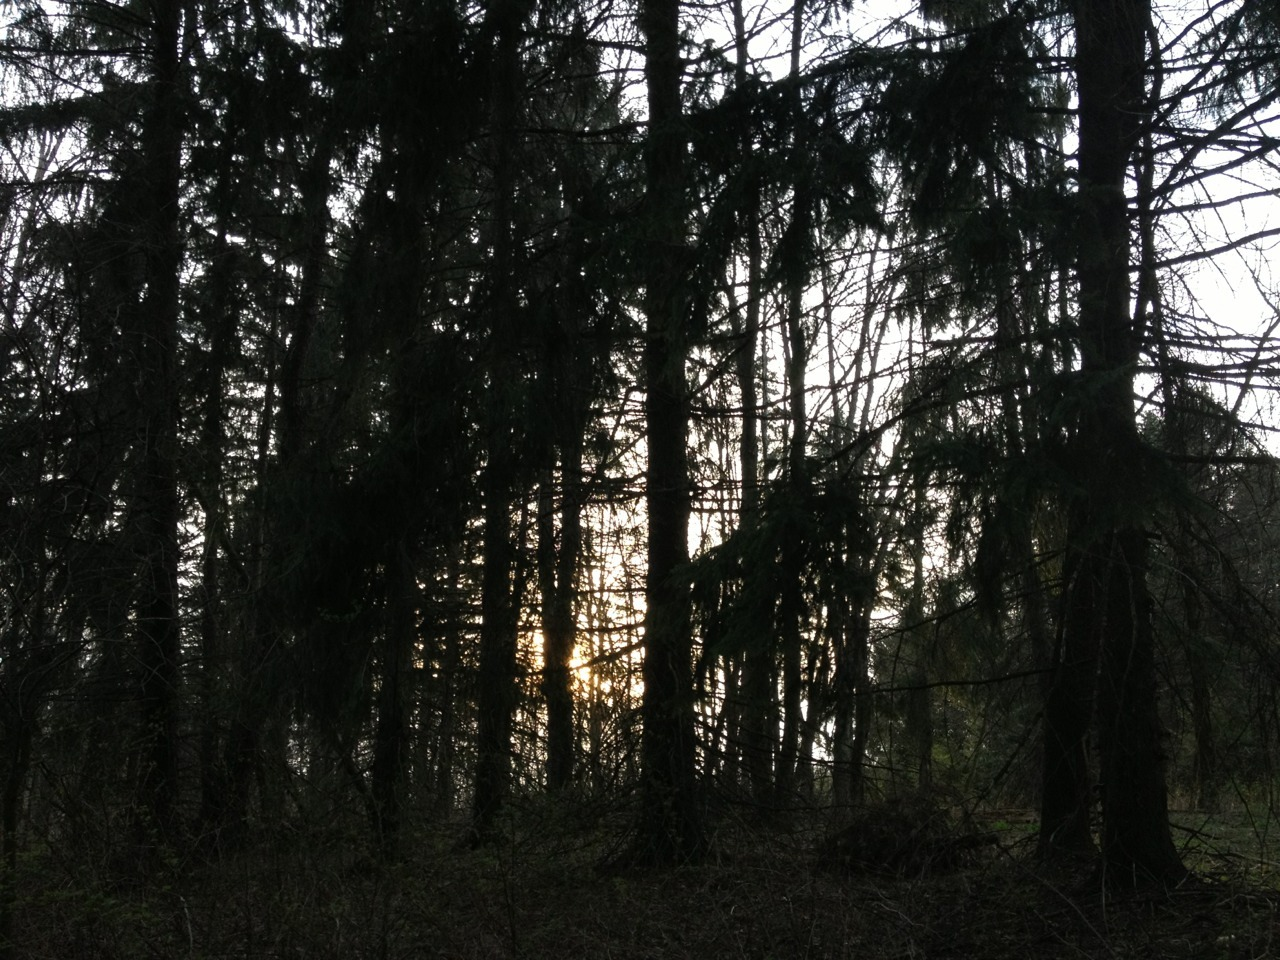 Sunset in the pines.